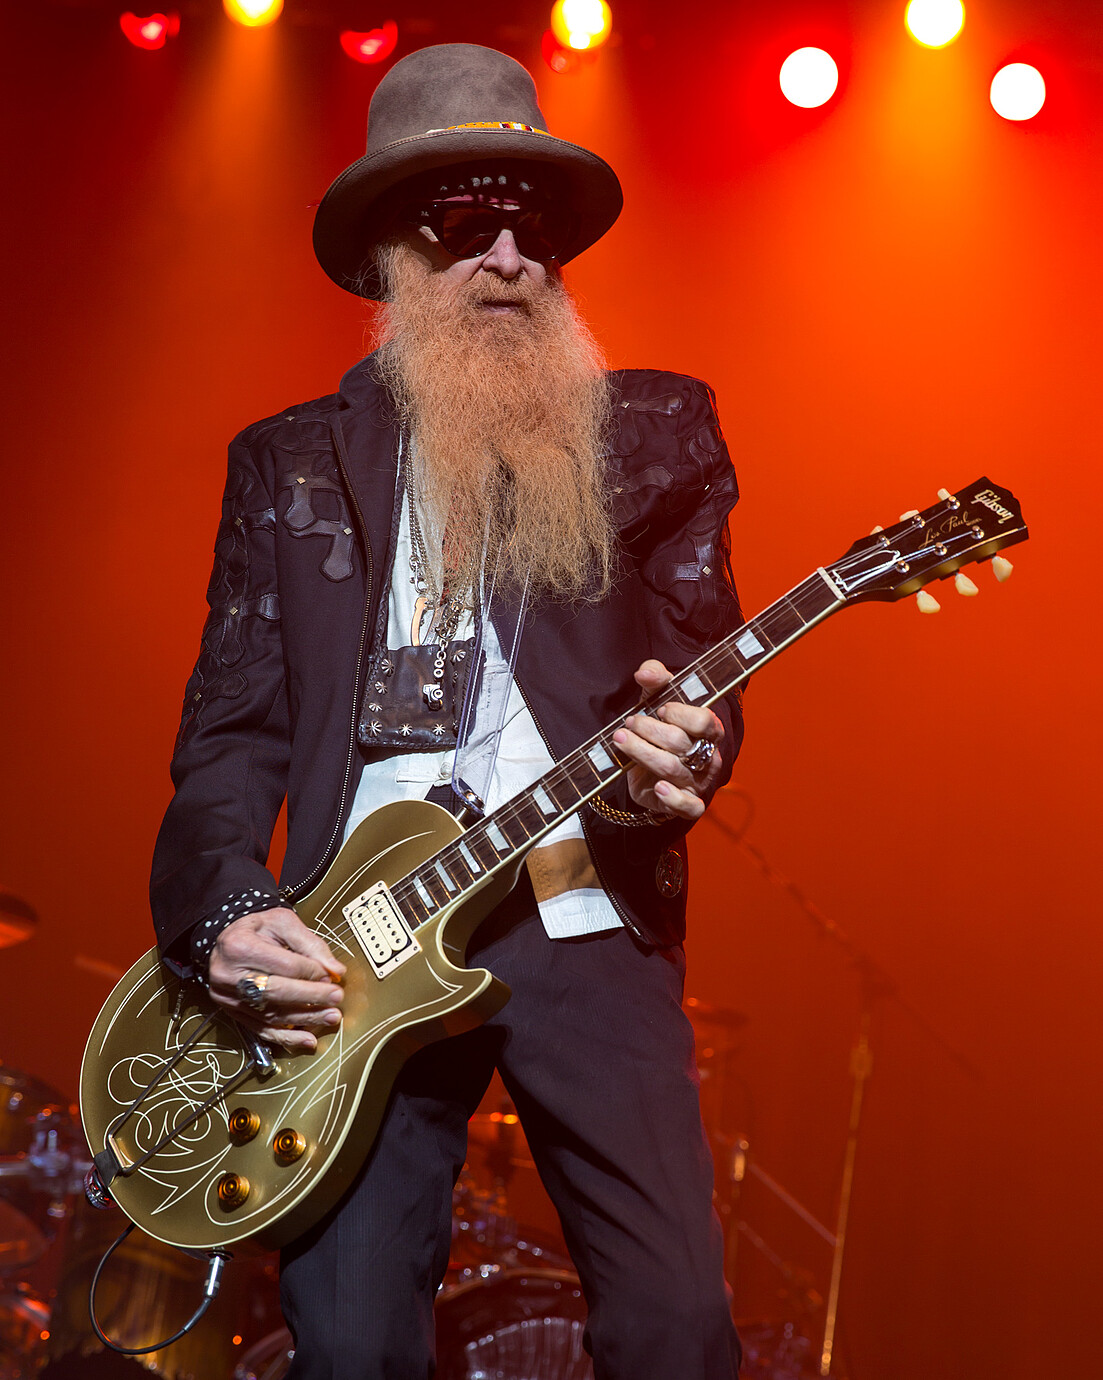 billy_gibbons_of_zz_top_performing_in_san_anto.jpg